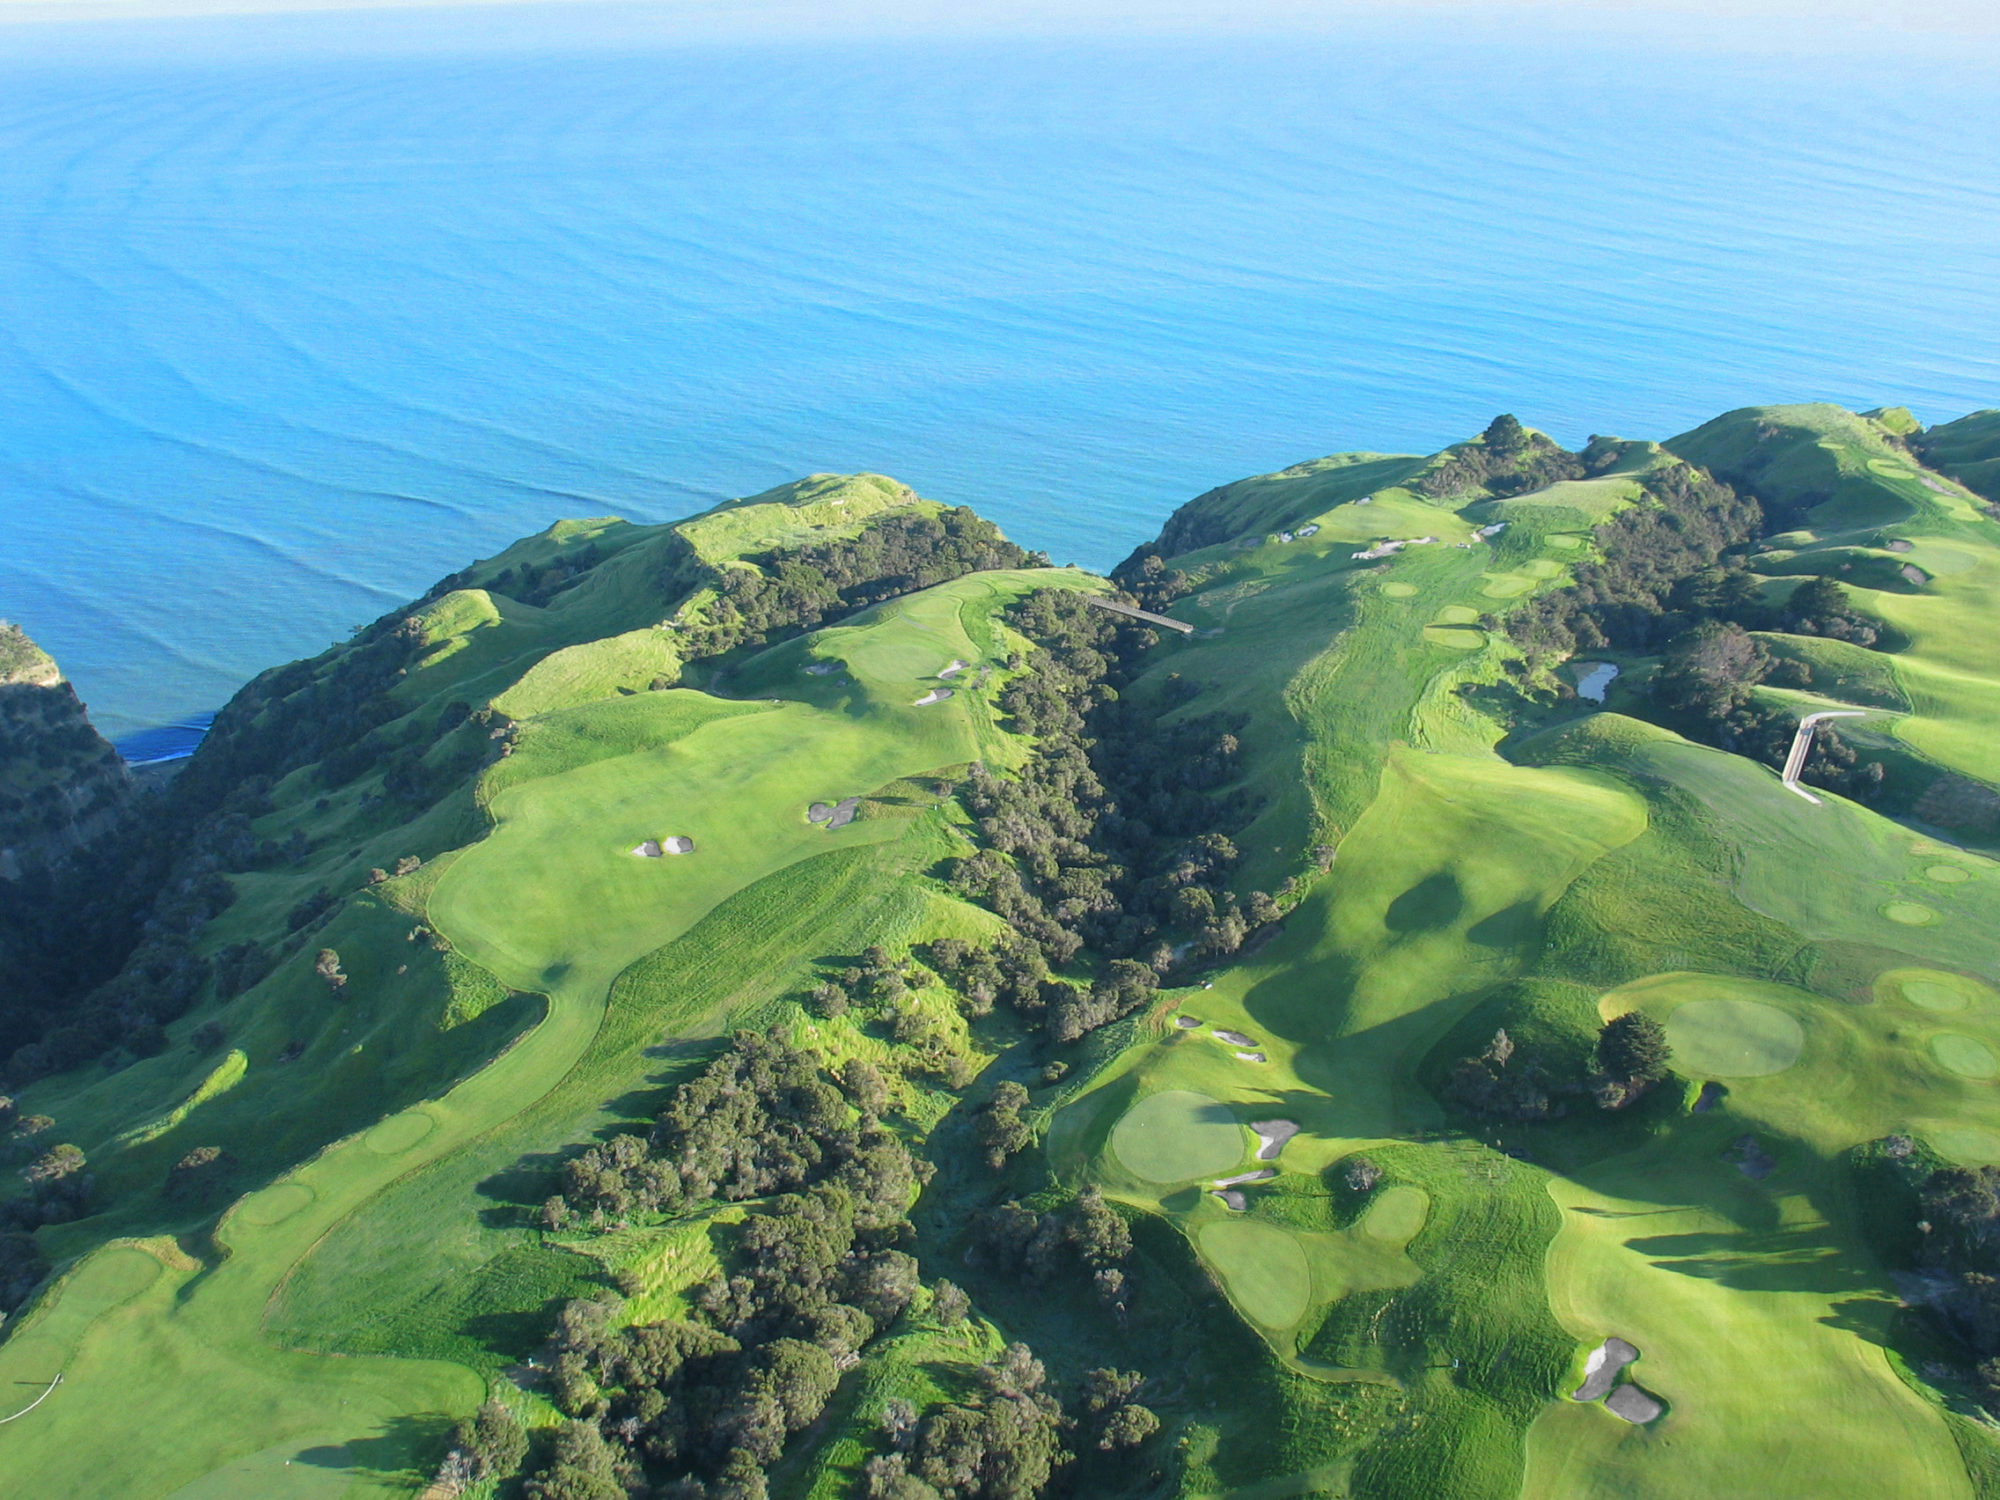 Golfers are so jaded by the aerial photos of Cape Kidnappers that some say they're disappointed when they finally get there. That's the 5th hole playing out toward the water on the left, the par-3 6th playing over the chasm nearest the ocean, and the par-4 7th playing back inland, with its second shot down into a ravine.